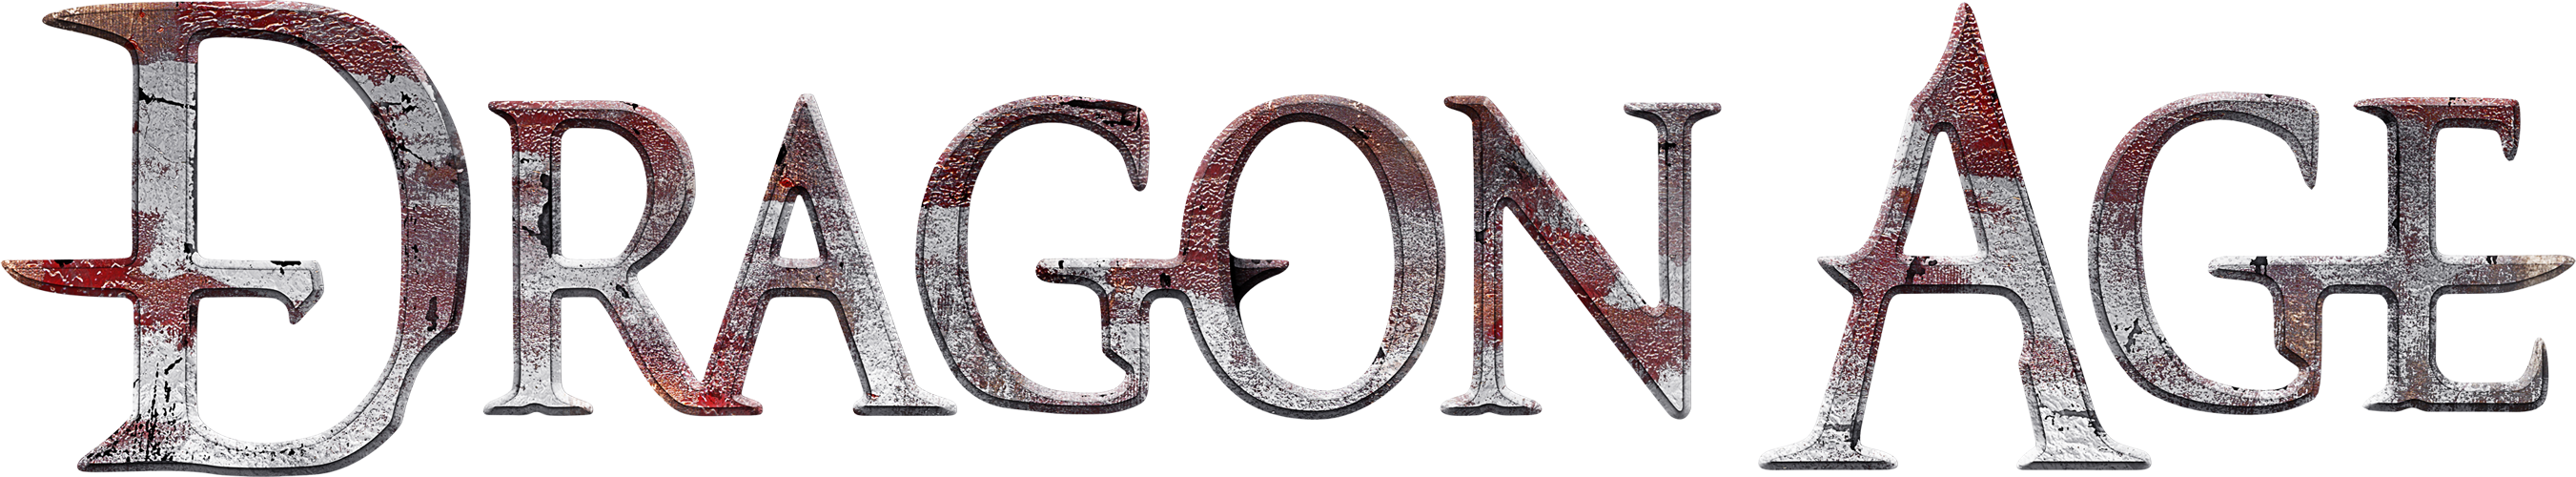 dragonage_logo_v2.png